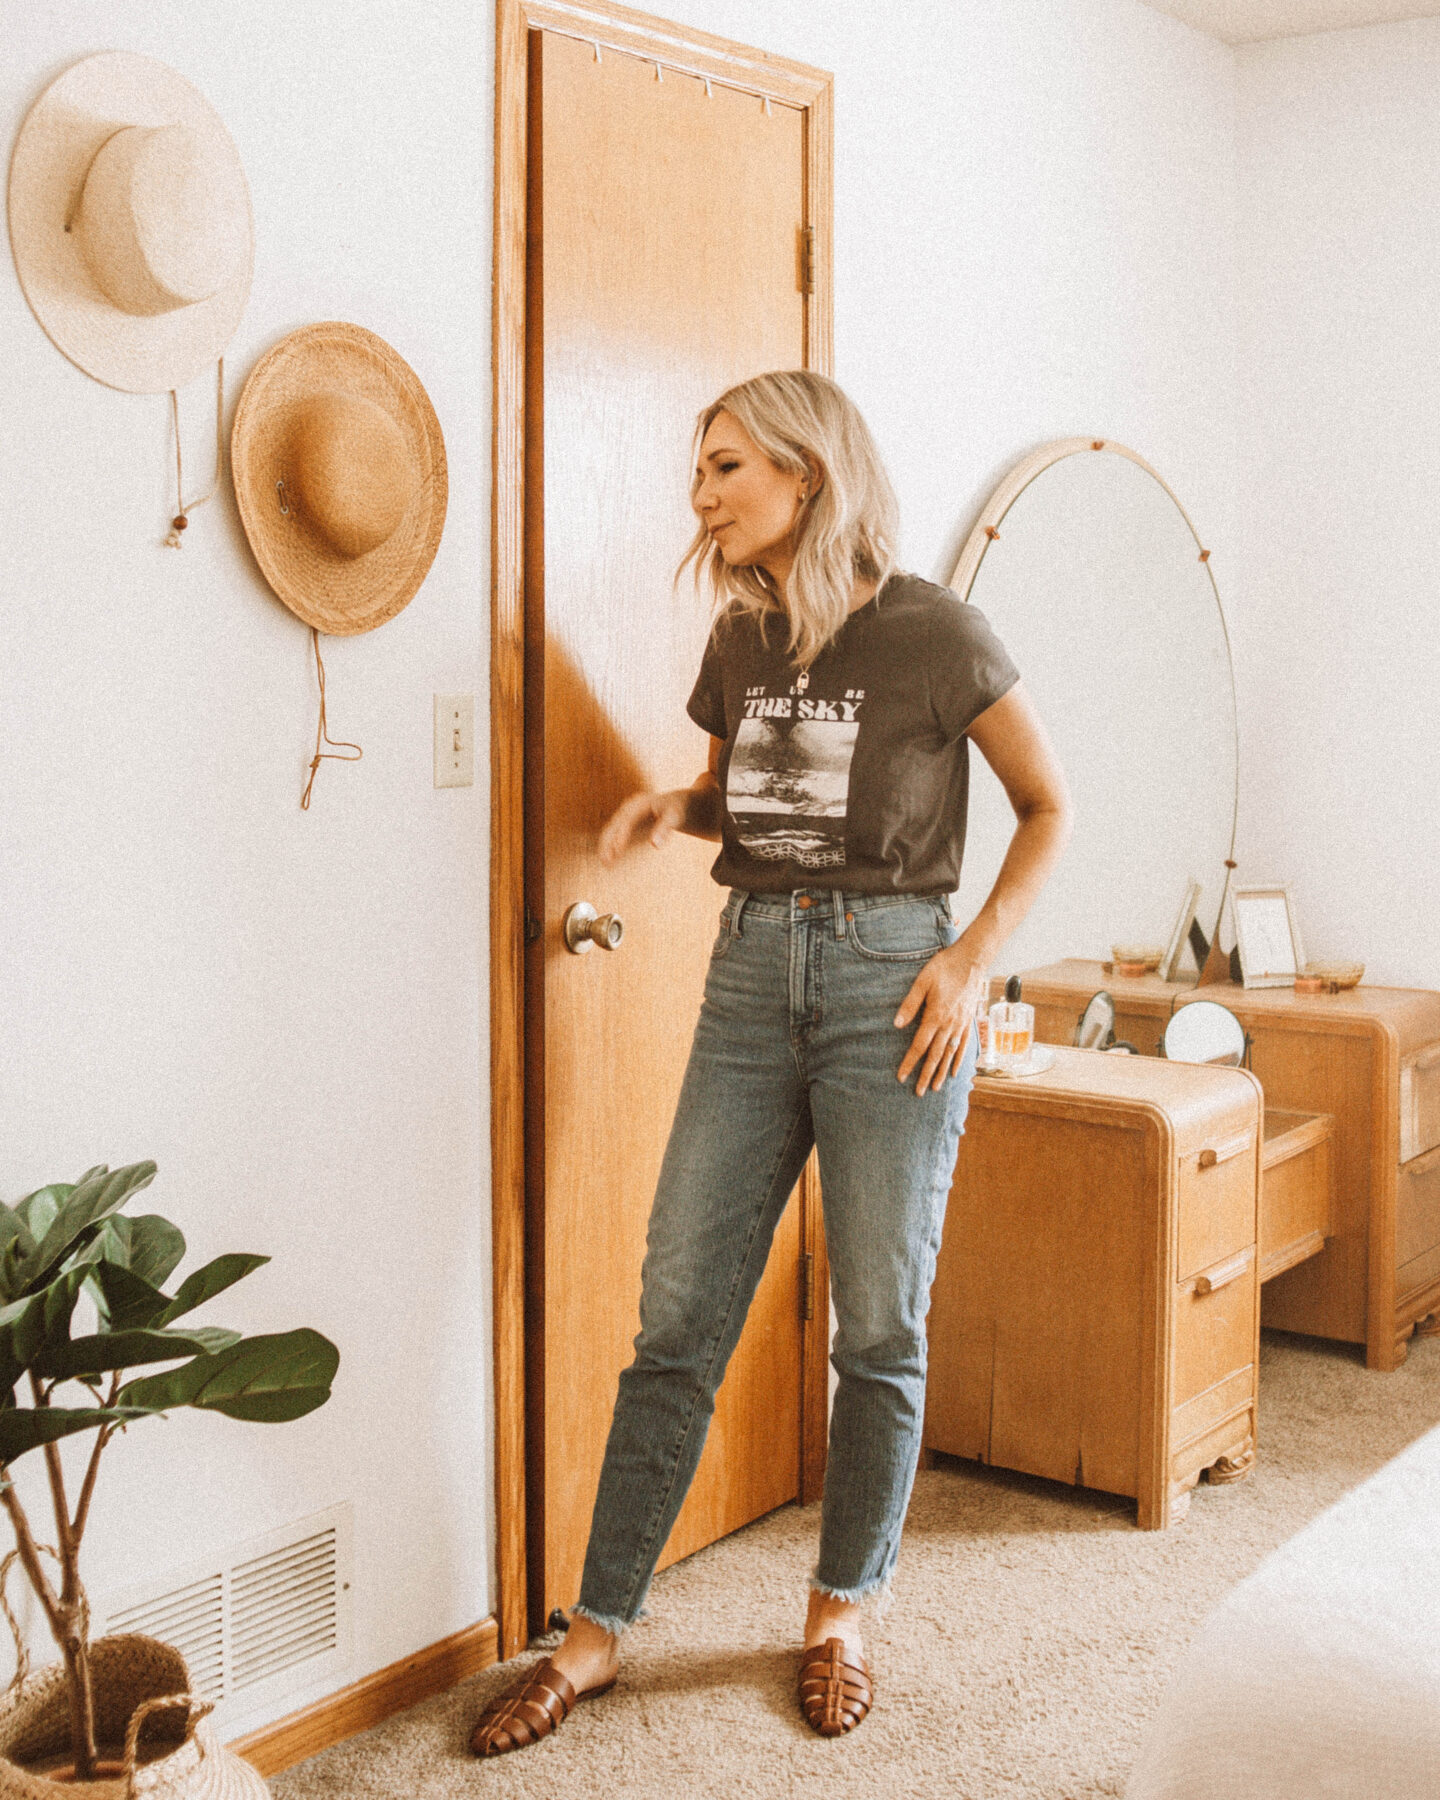 New Spring pieces from  Madewell & J.Crew: Soft, Easy Basics, Madewell jeans